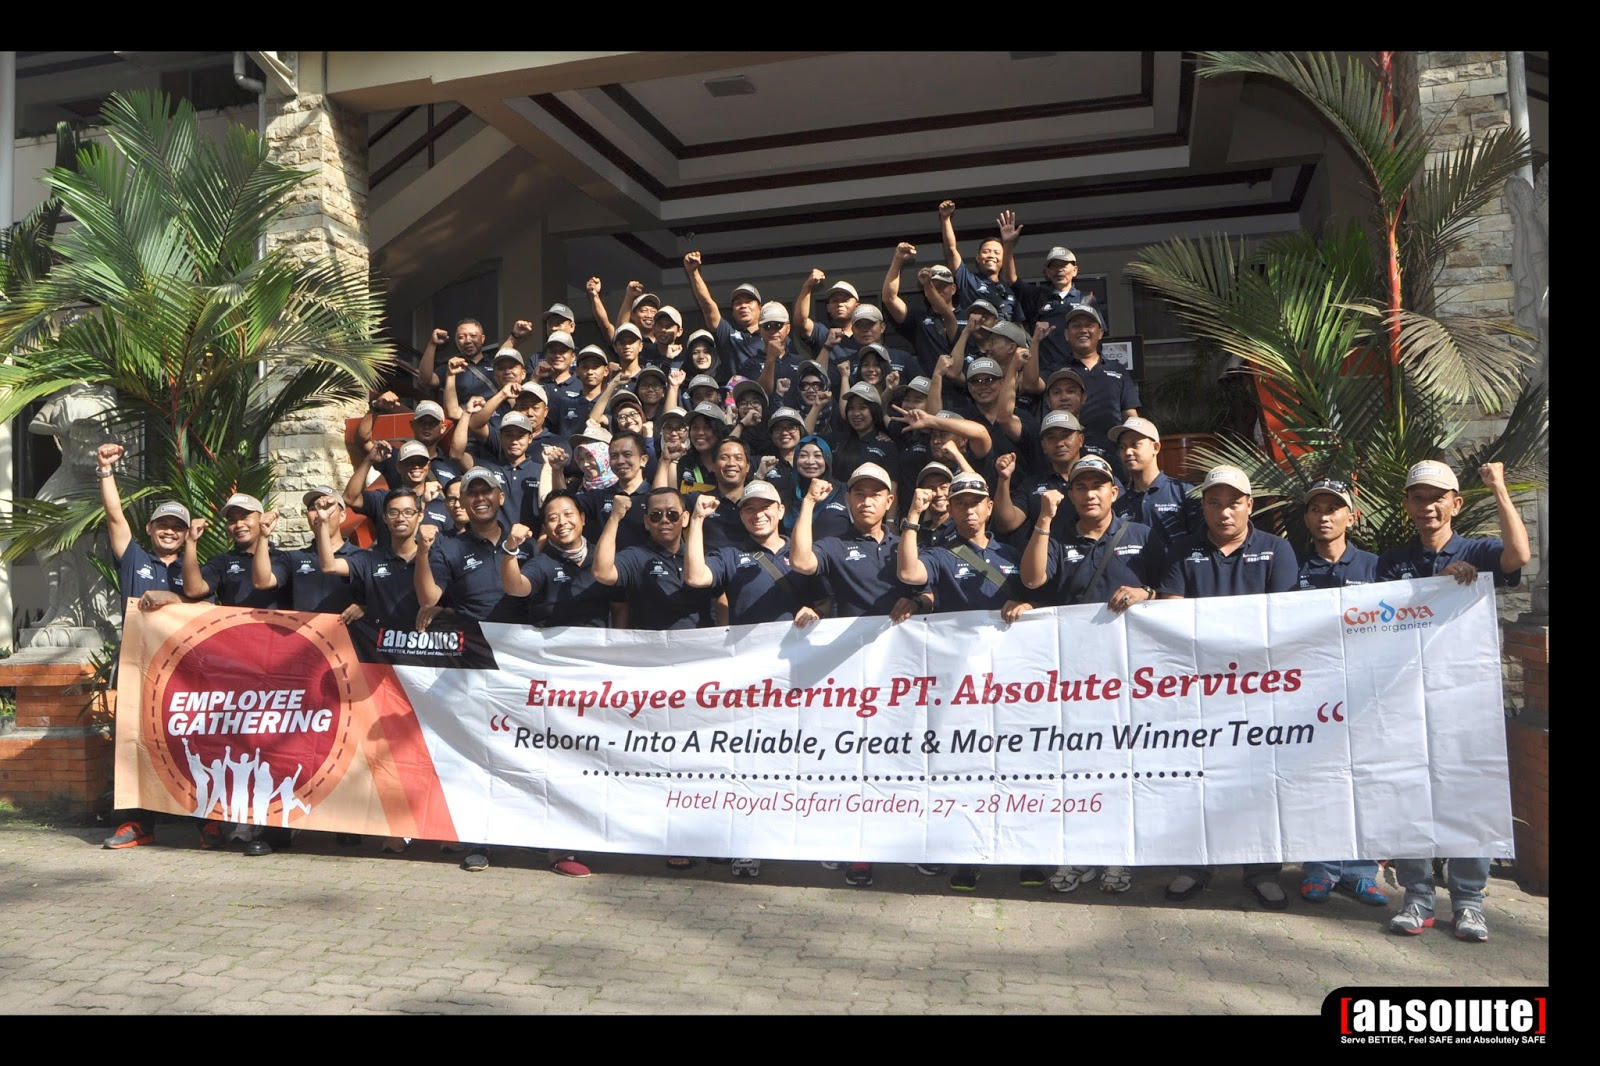 Employee Outbound 2016 PT Absolute Services in Royal Safari Garden Hotel Puncak